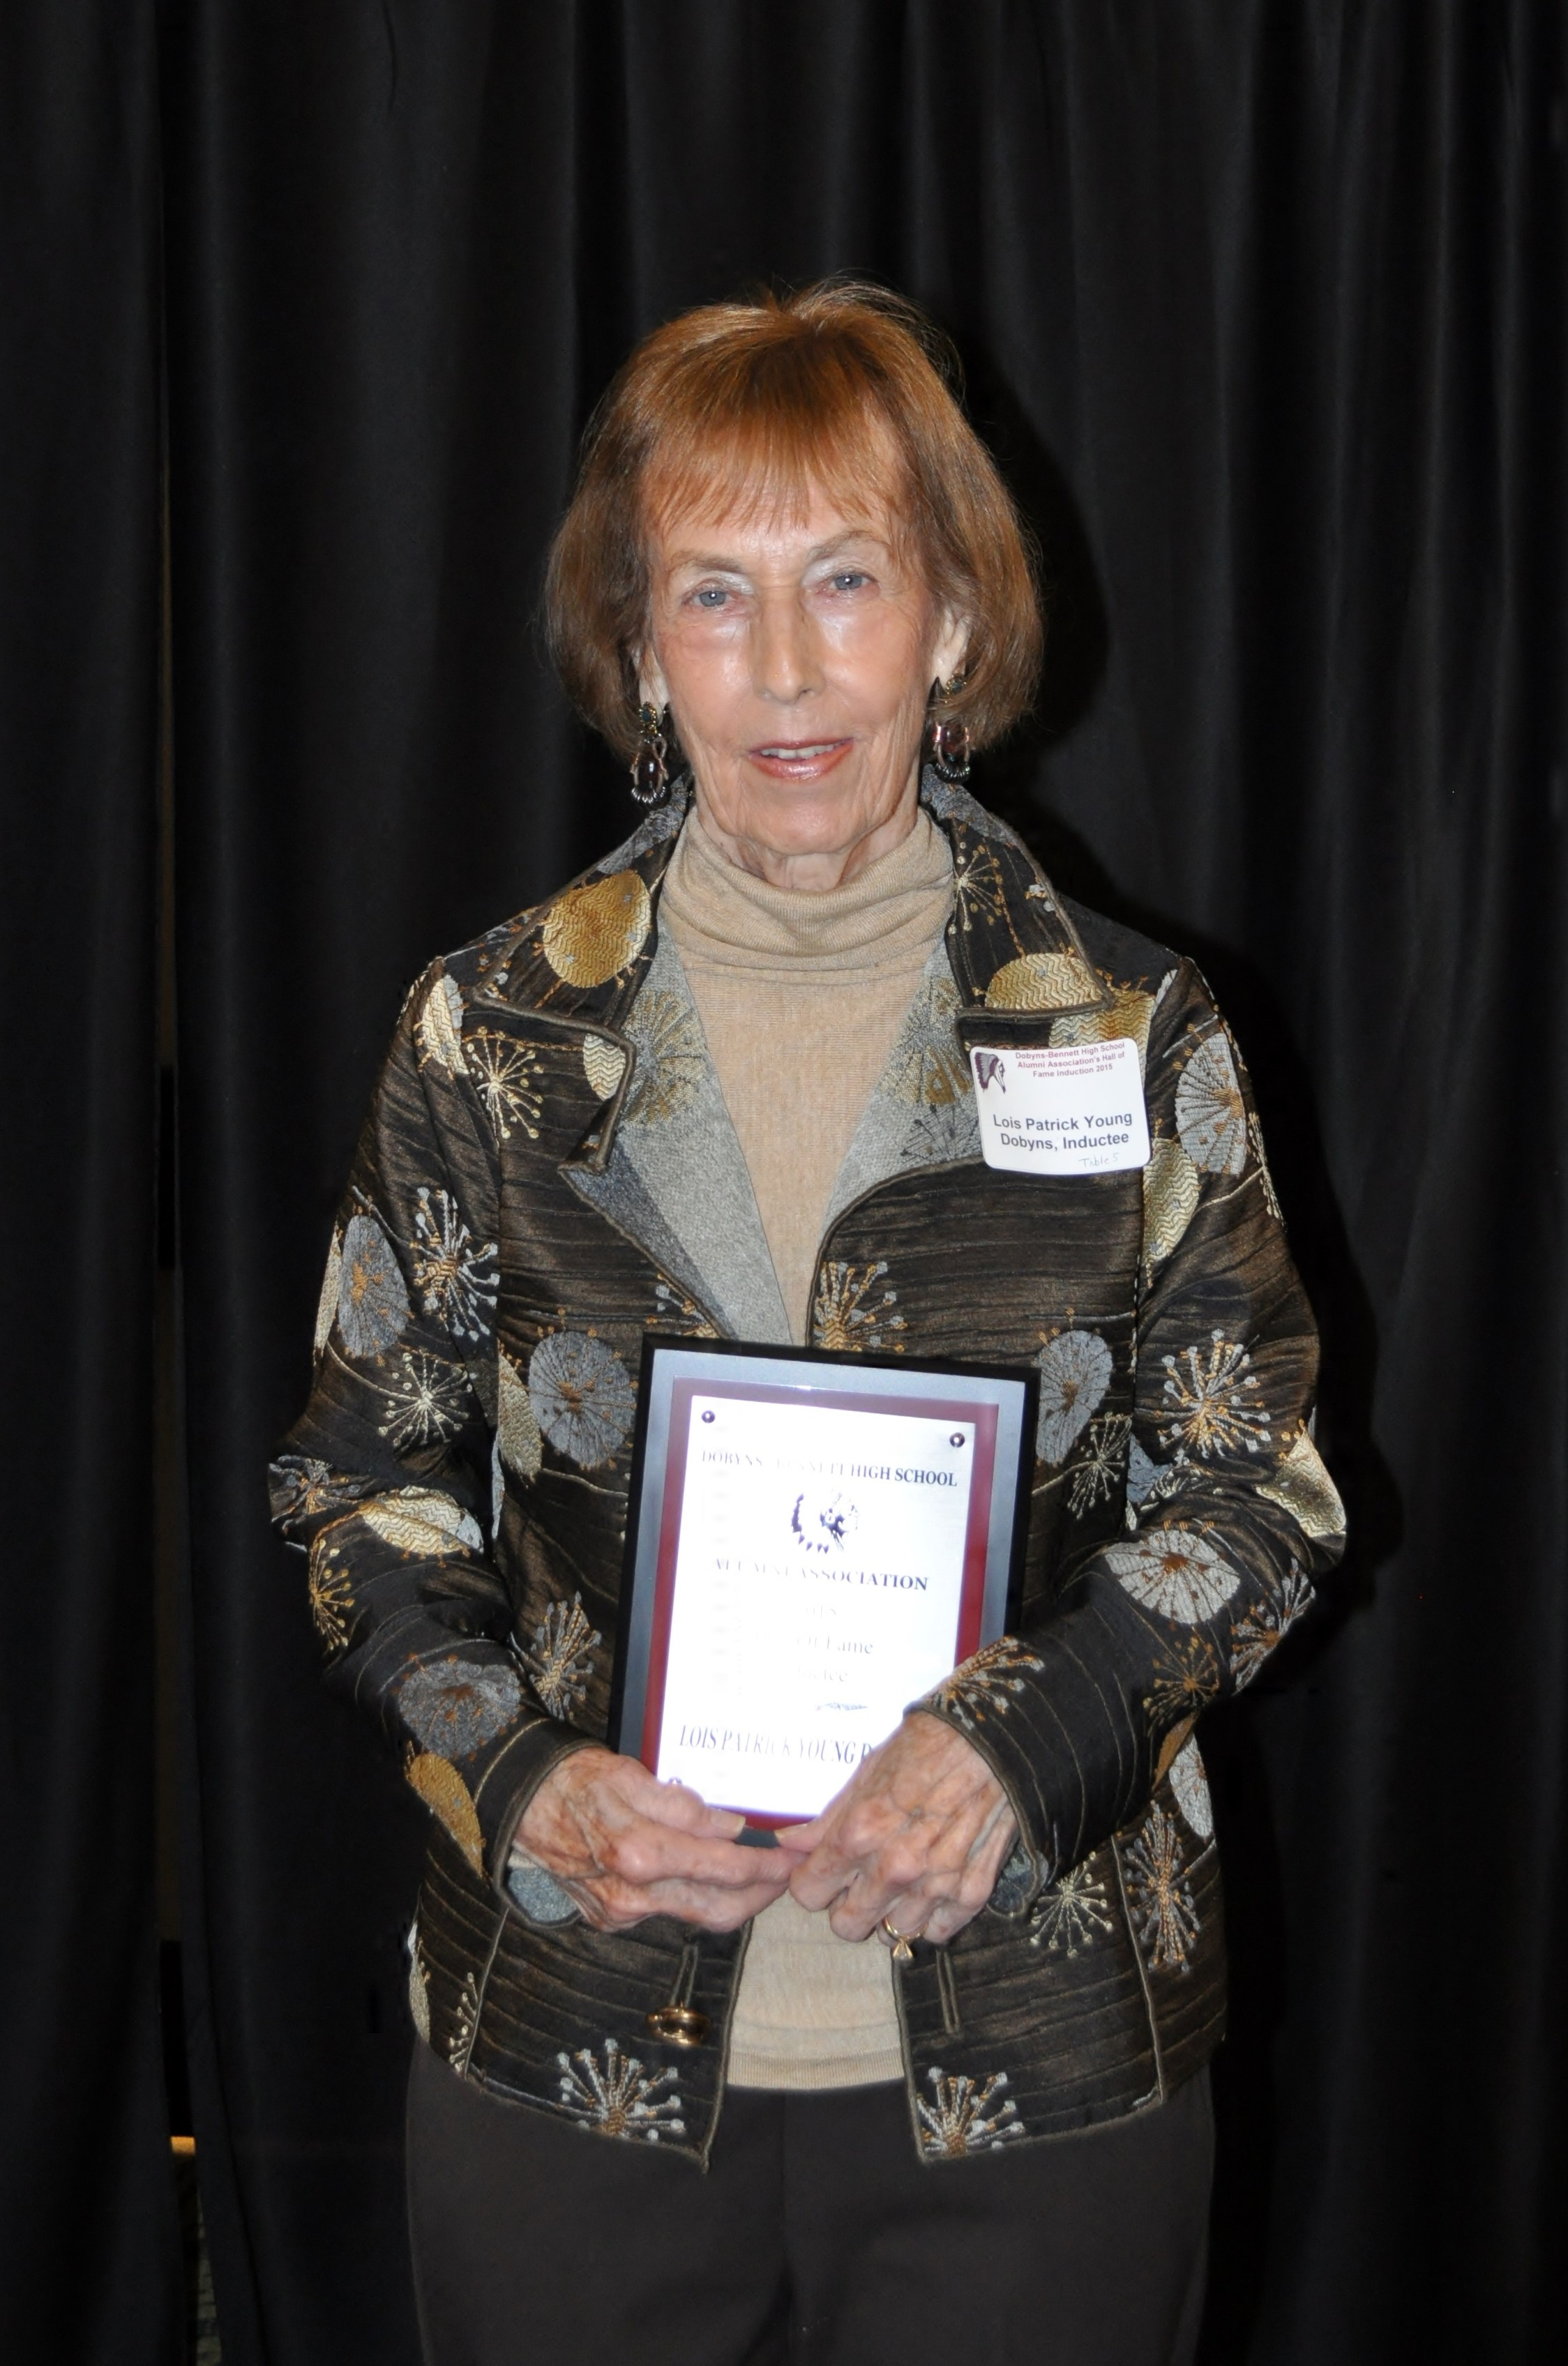 7th Annual Dobyns-Bennett Alumni Hall of Fame Inductee: Lois Patrick Young-Dobyns – Class of 1954